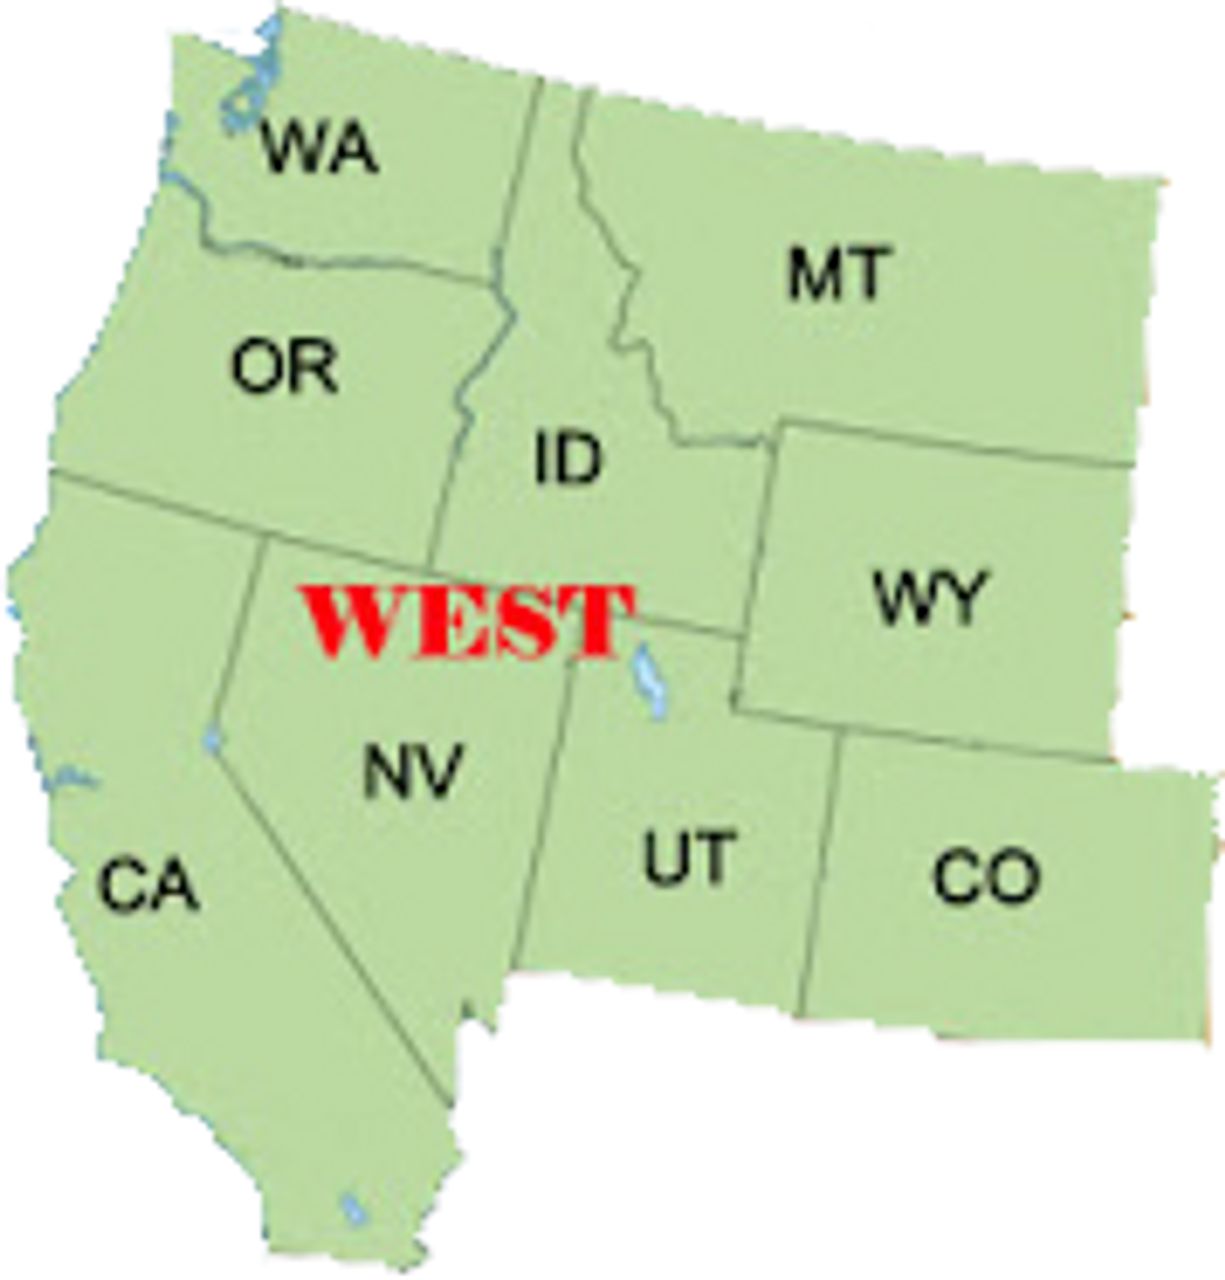 Western Colleges